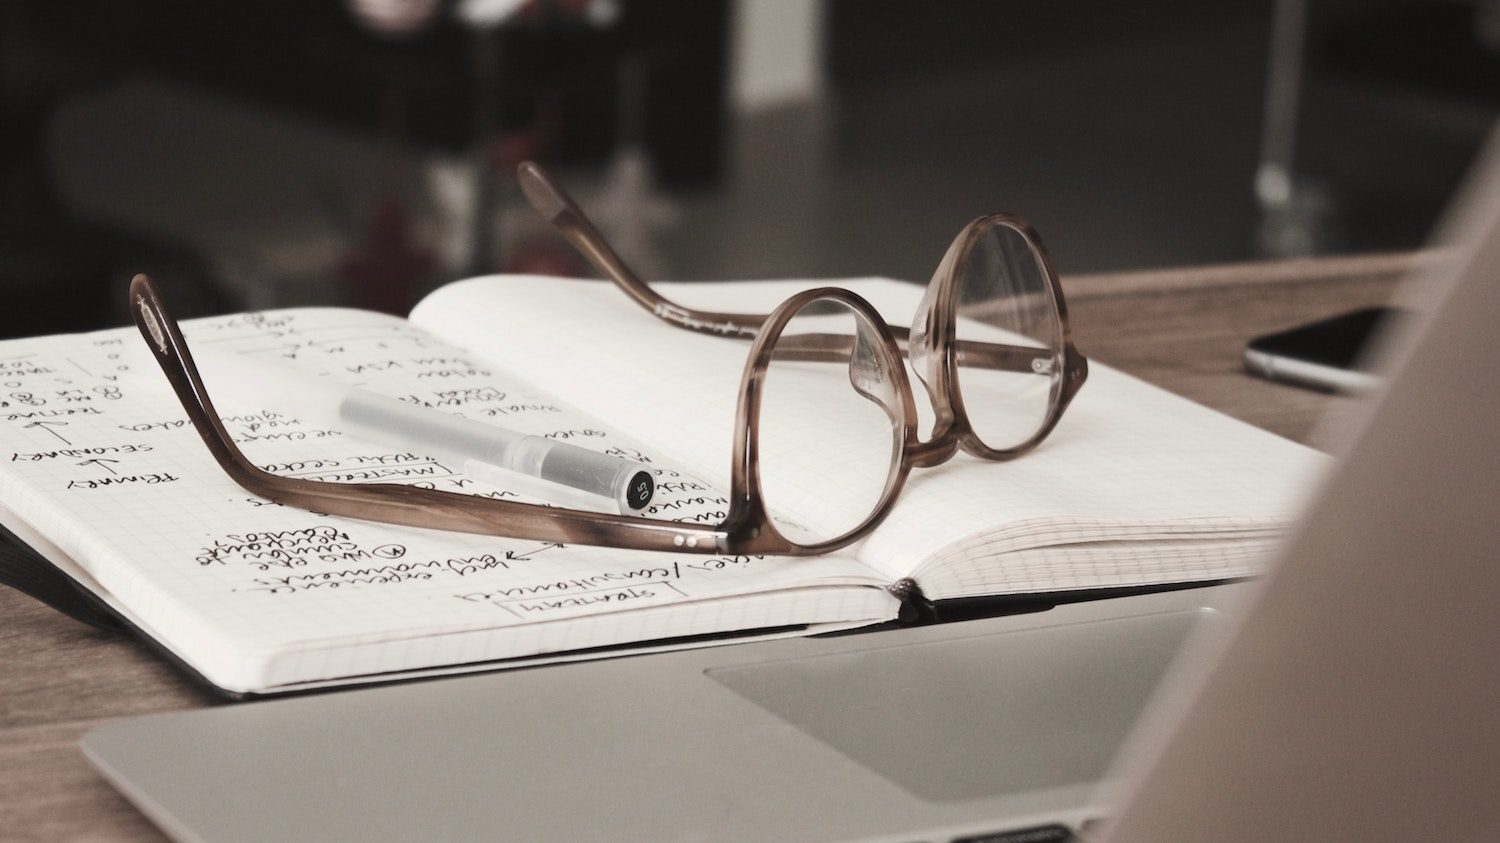 a pair of glasses resting on a journal with writing in it which is obscured